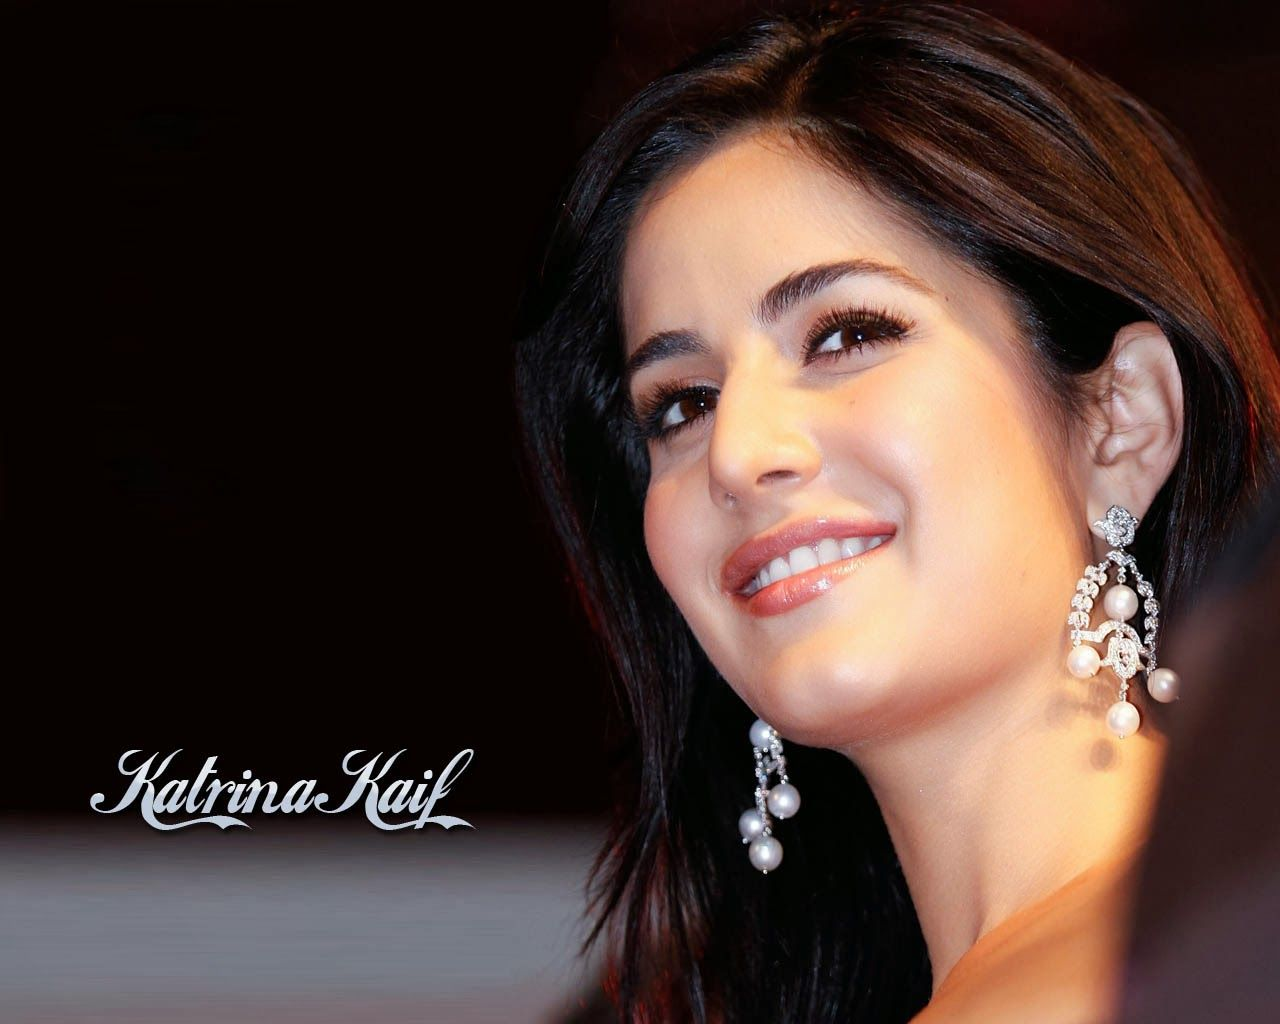 katrina kaif beautiful image hd